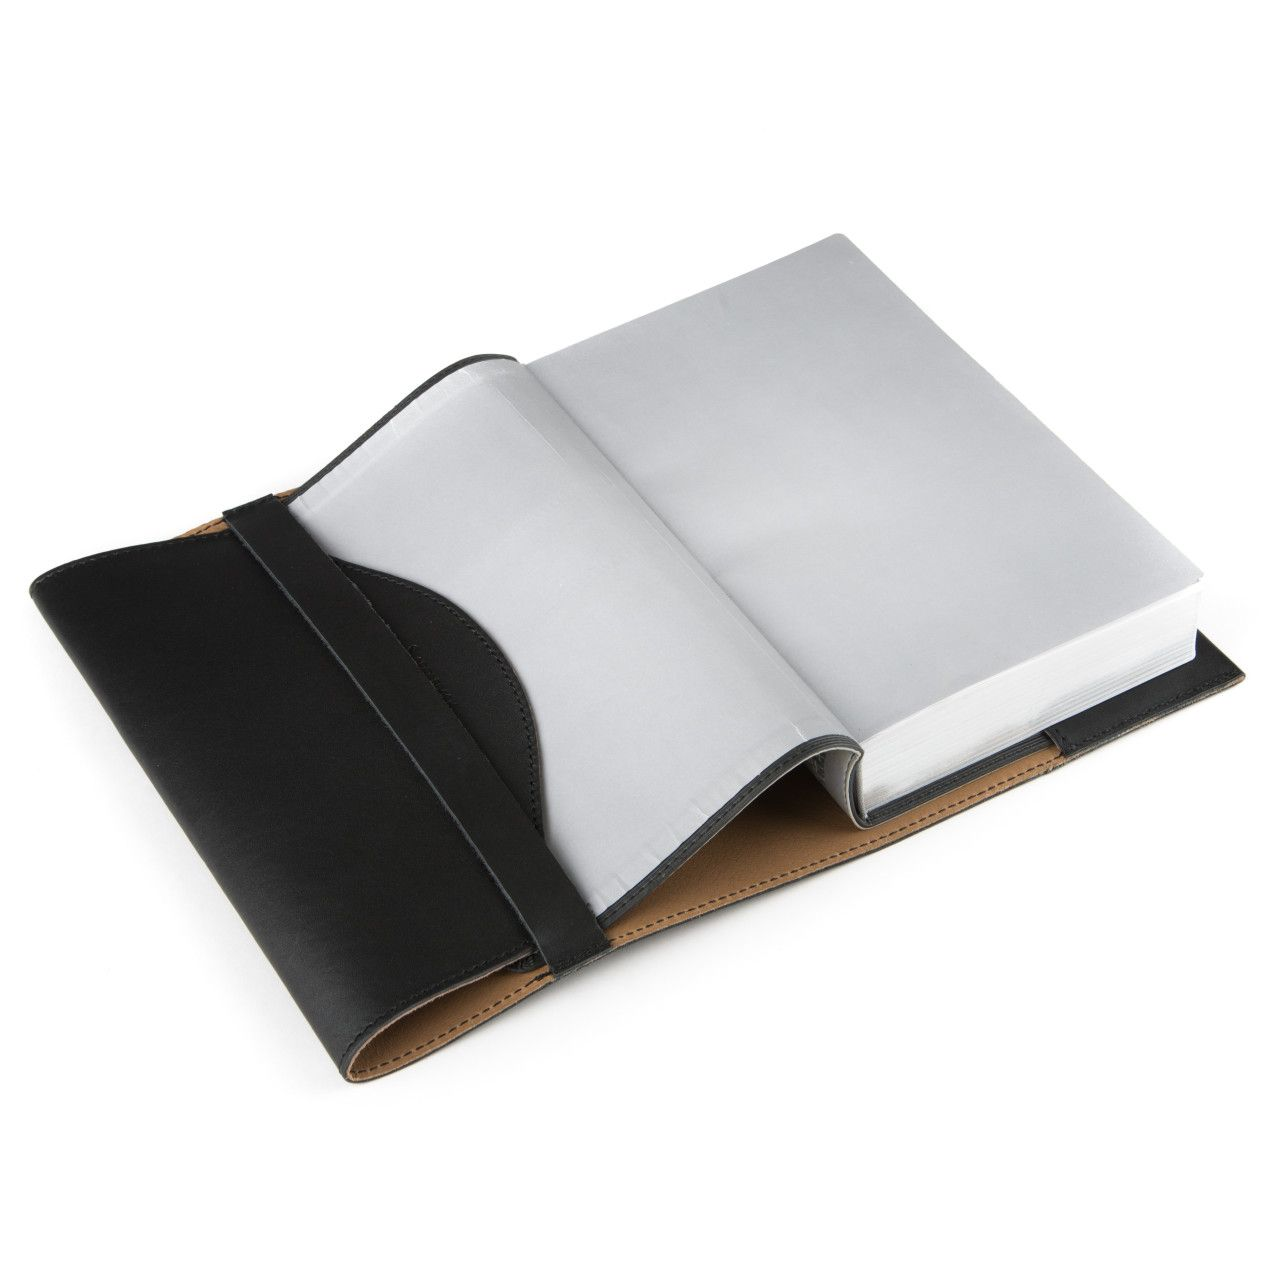 Bible in the leather book cover medium in black leather